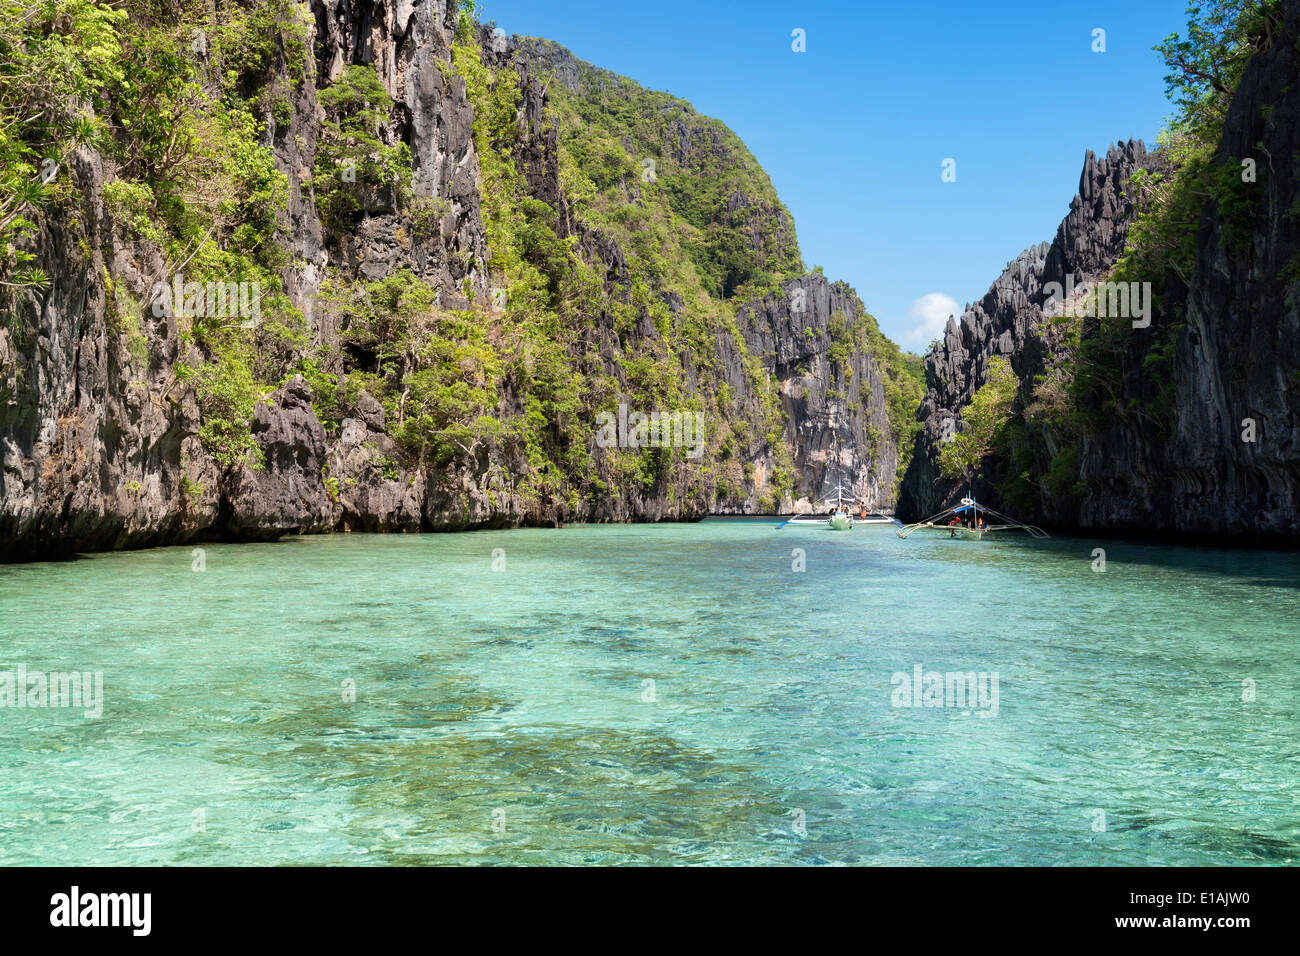 Island hopping with traditional banca boat in El Nido , Palawan - Philippines . - Stock Image